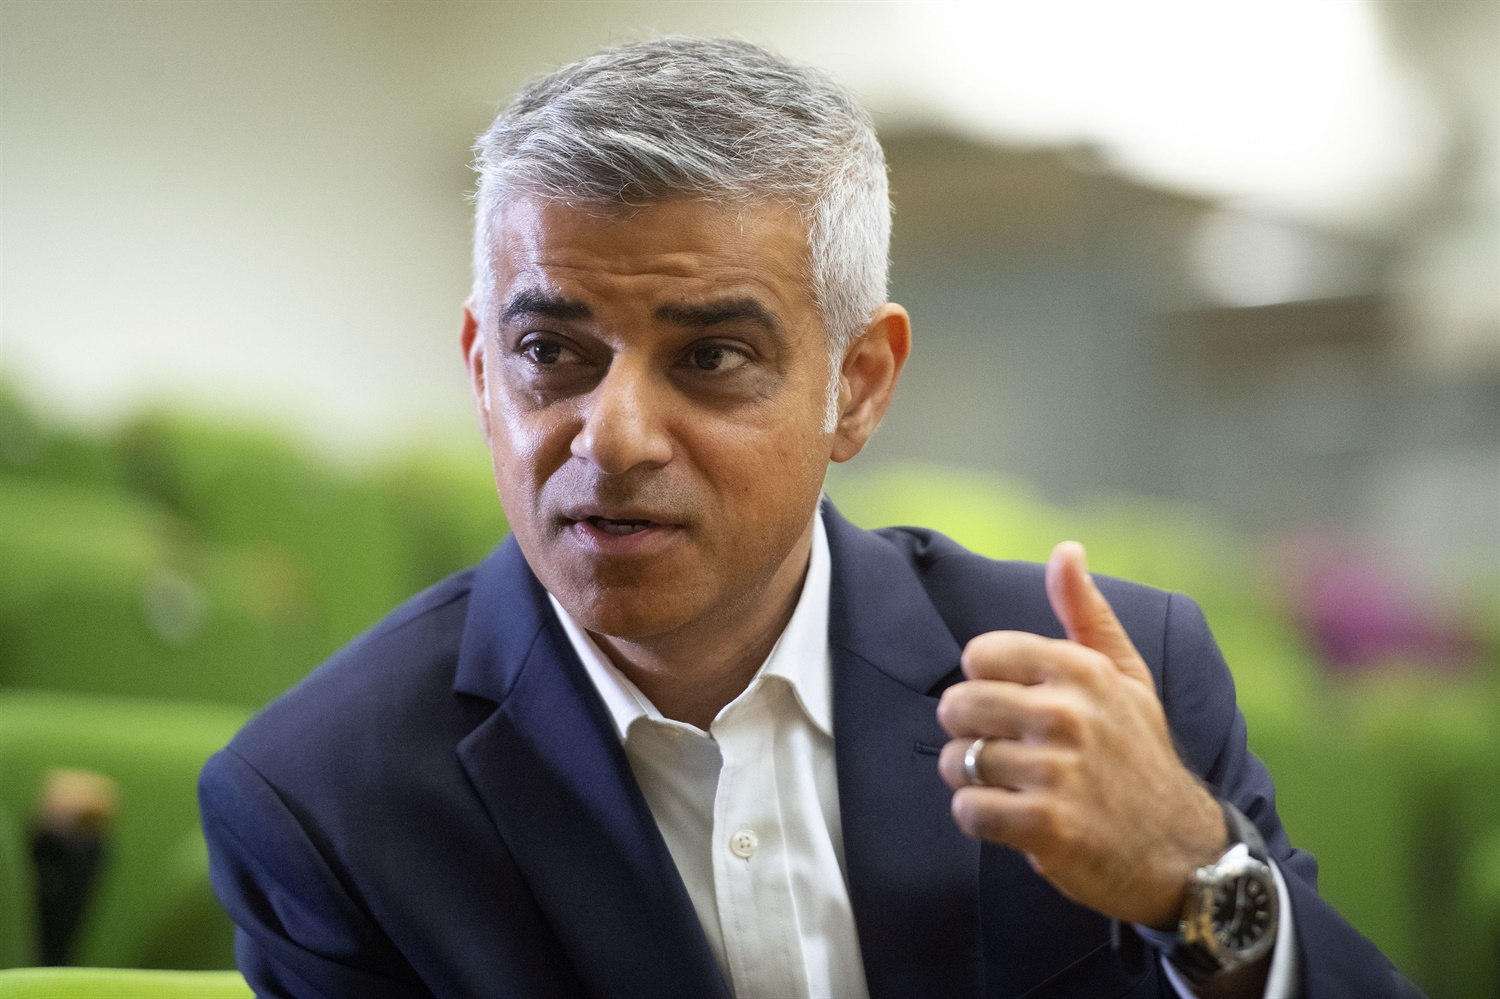 Transport minister blames Khan for TfL's financial problems as it struggles to fund Crossrail